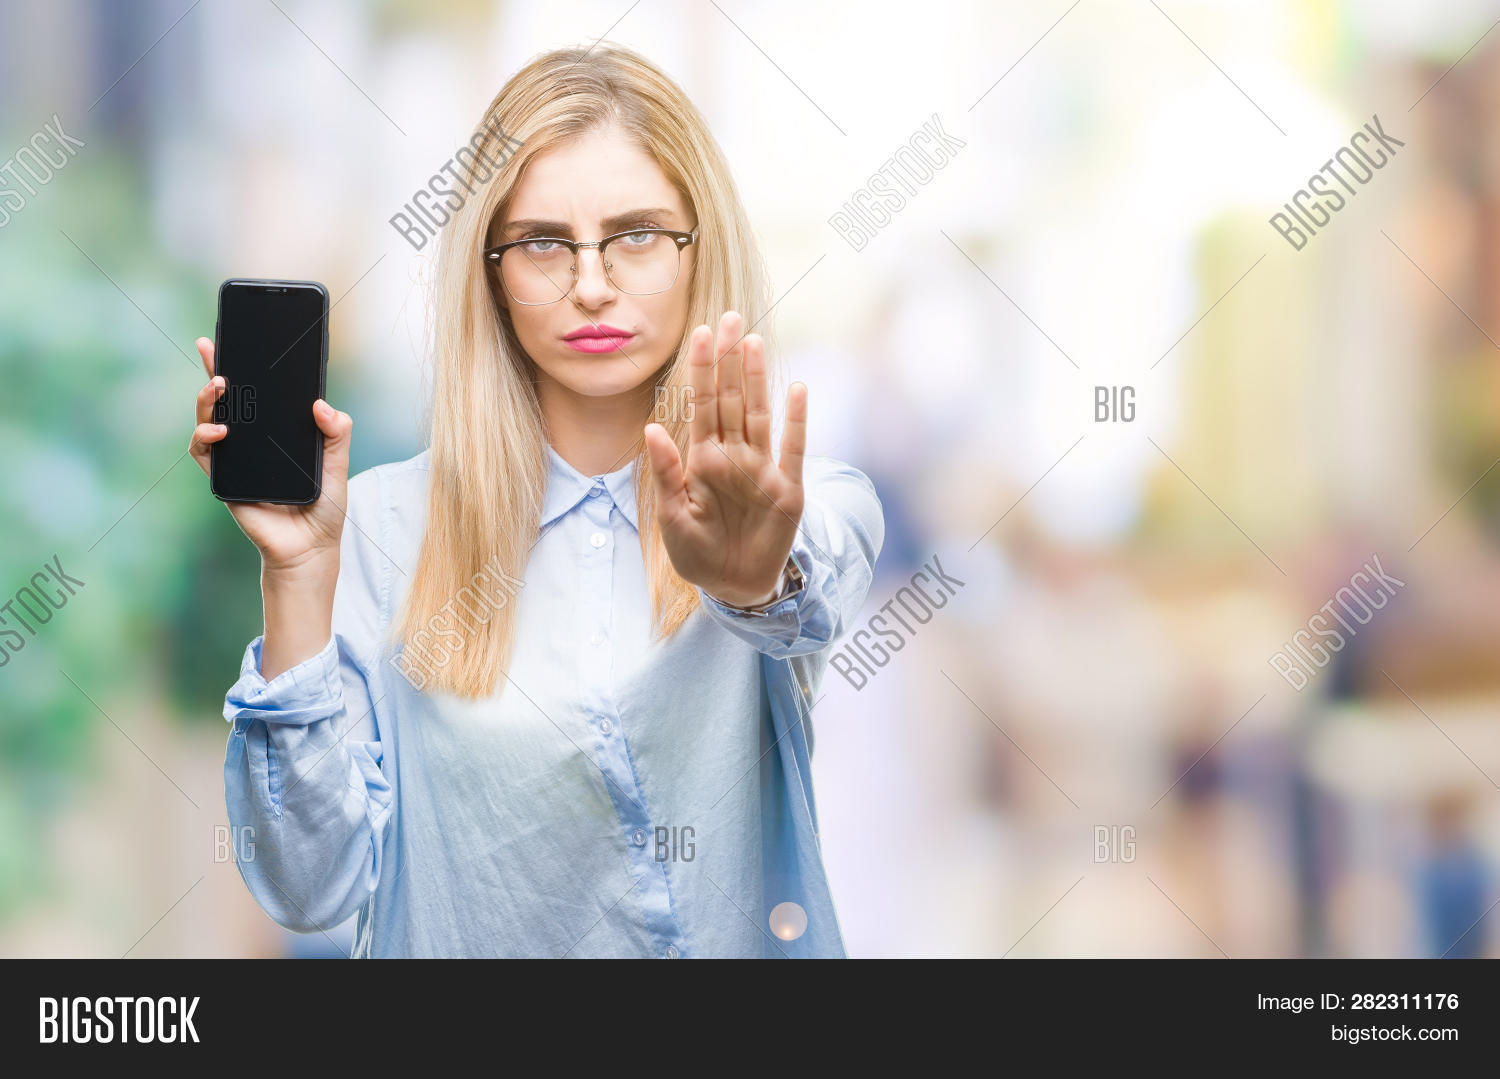 Young Beautiful Blonde Image Photo Free Trial Bigstock